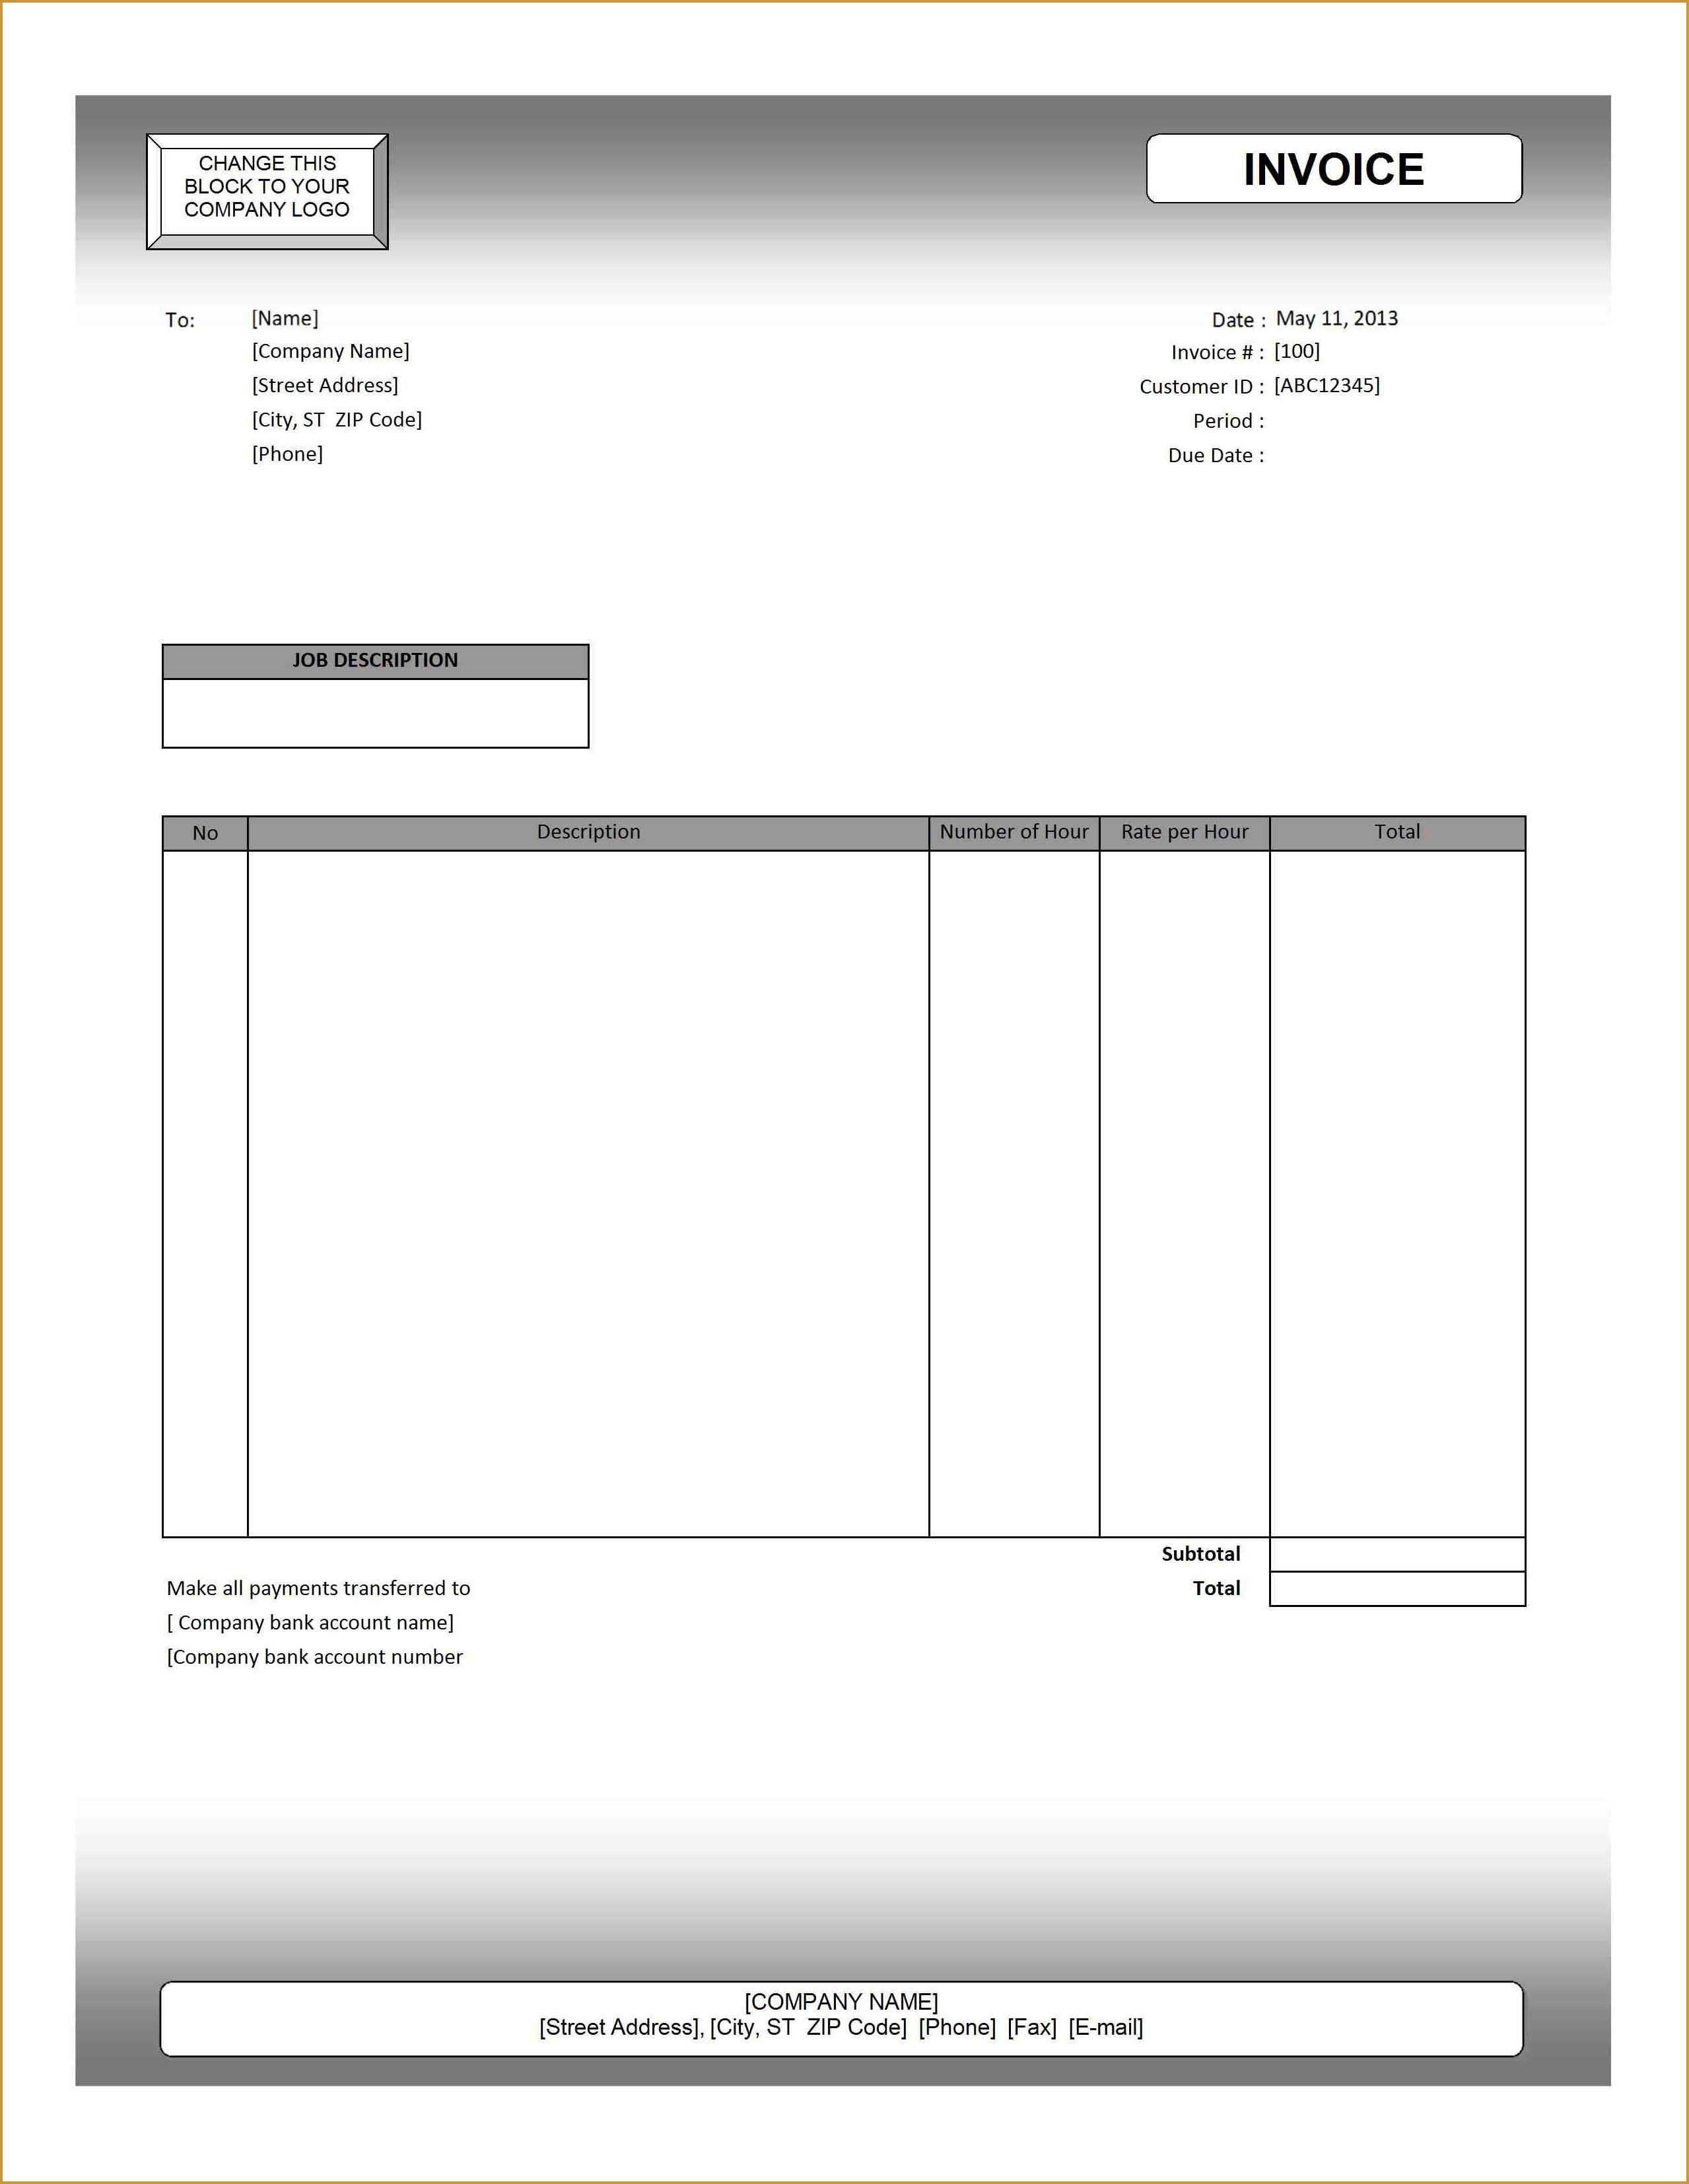 generic invoice form billing invoice template blank invoice blank invoice form excel